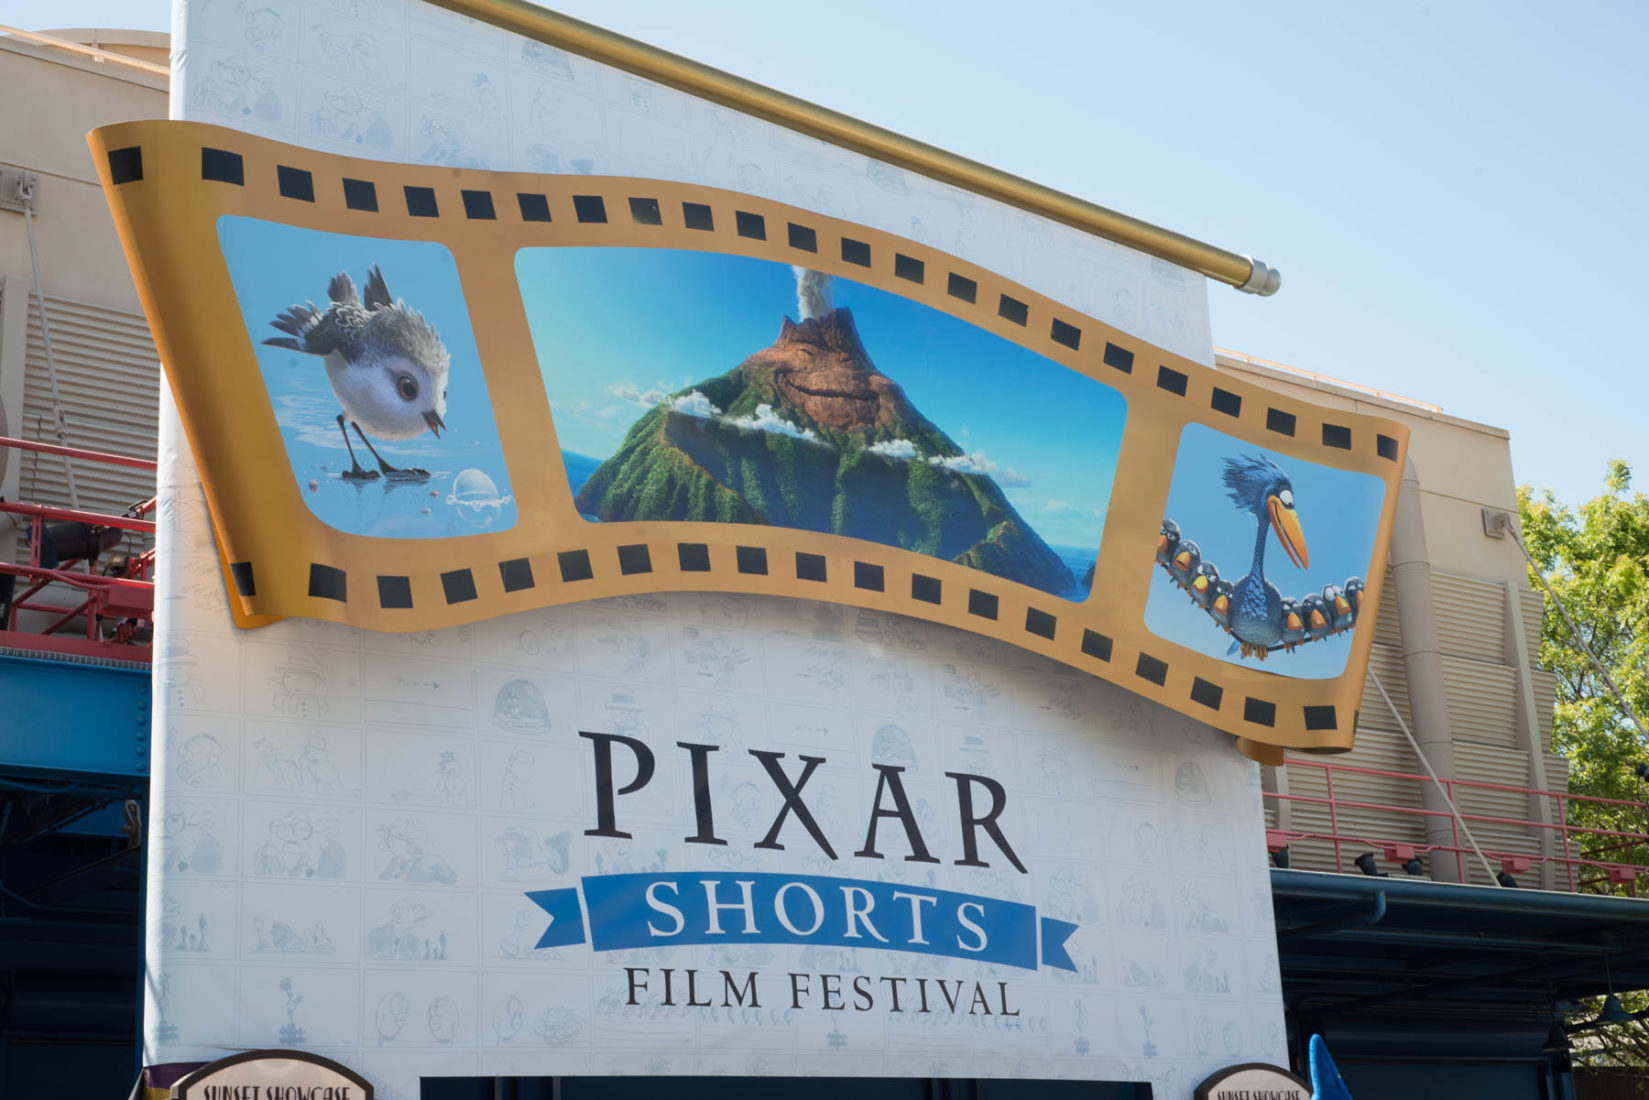 Pixar Shorts Entrance at the Sunset Showcase Theatre in Disneyland's California Adventure